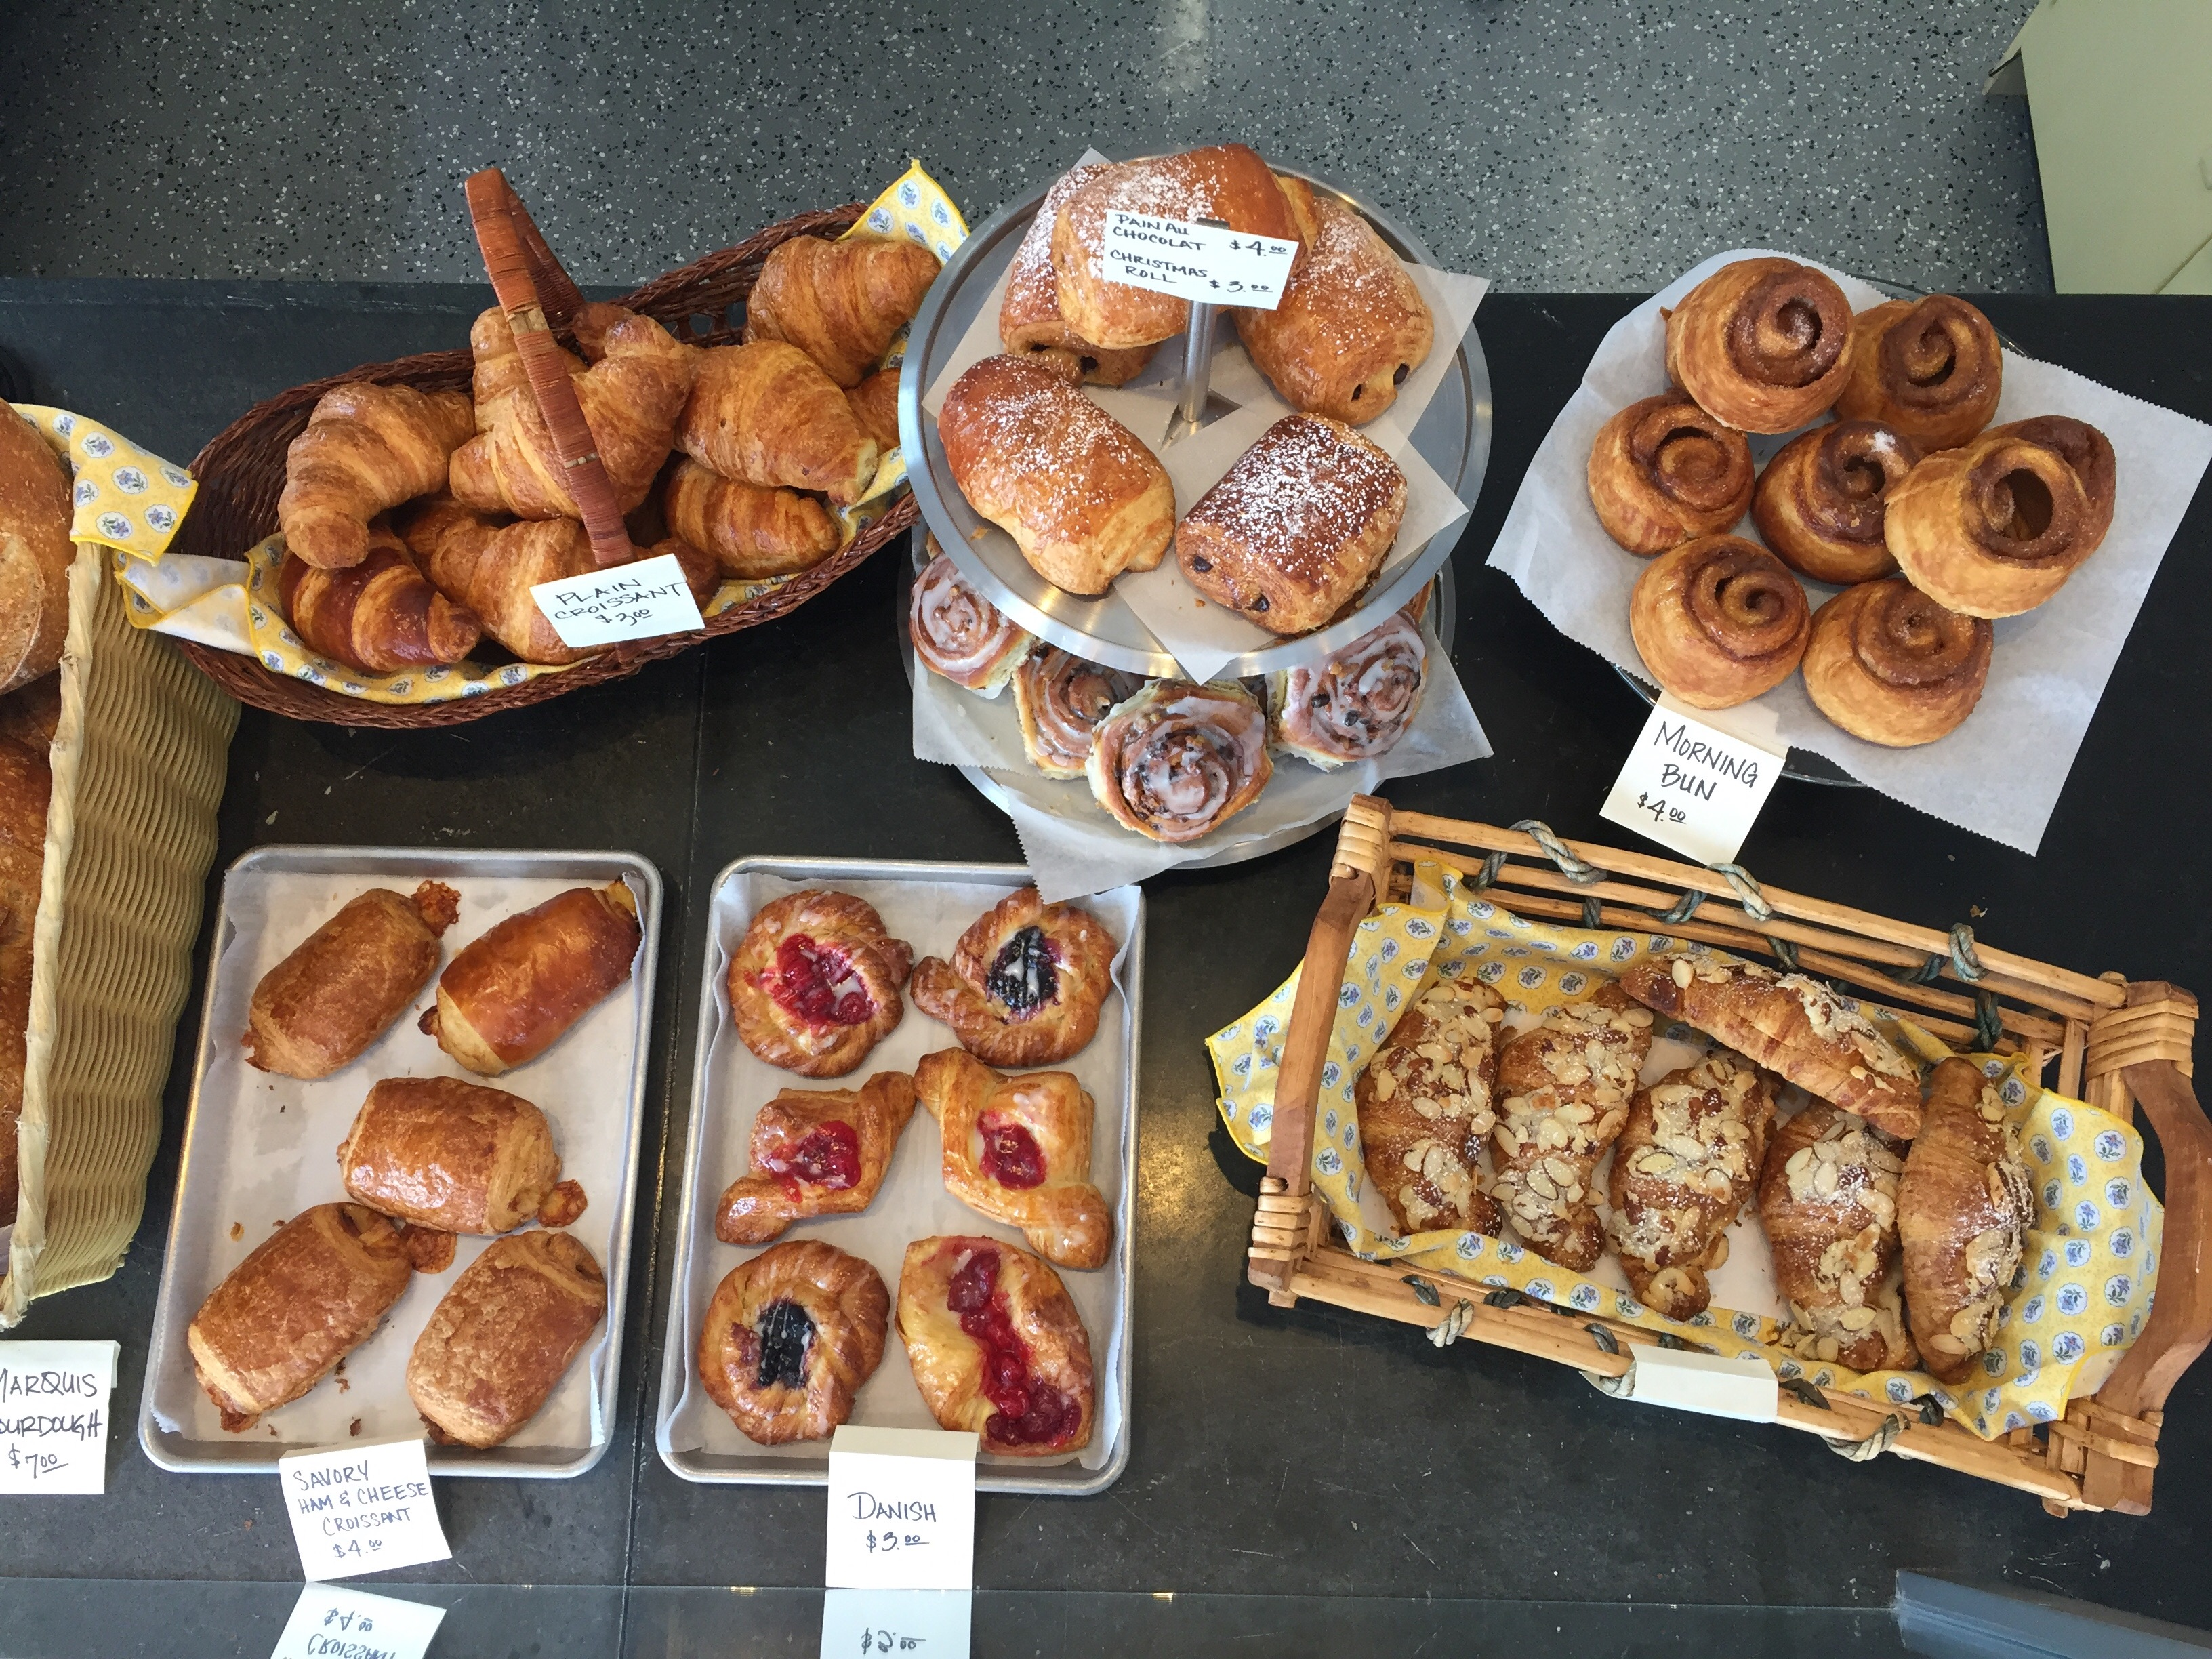 Pastry assortment